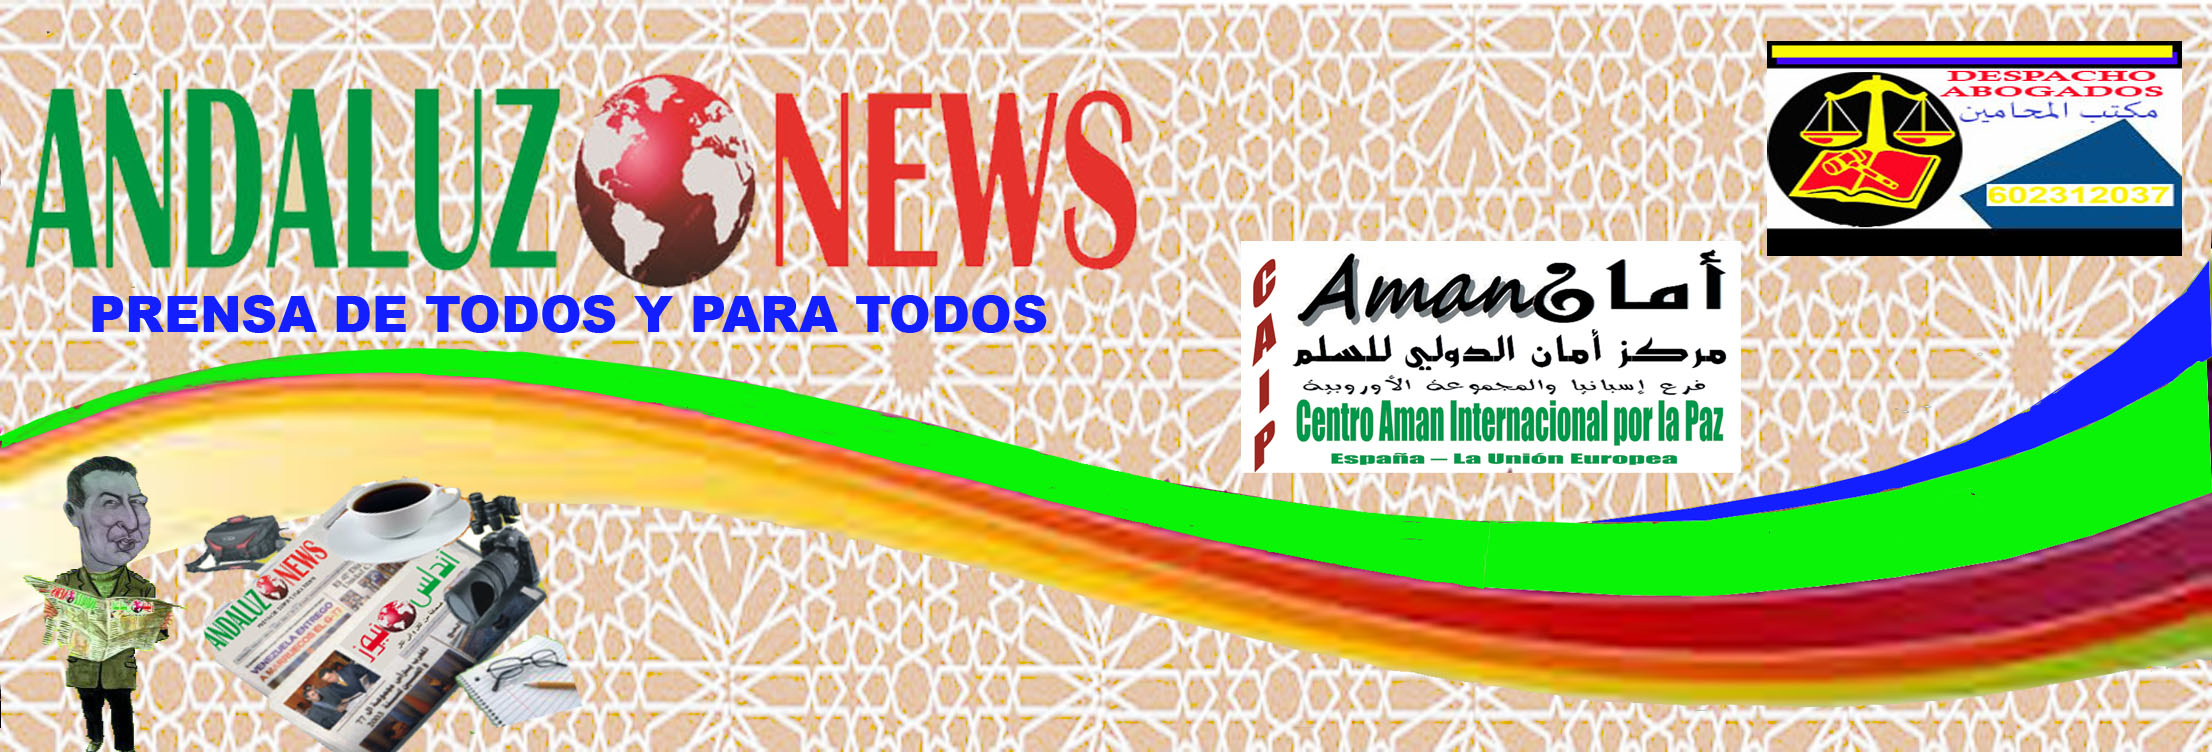 AndaluzNews